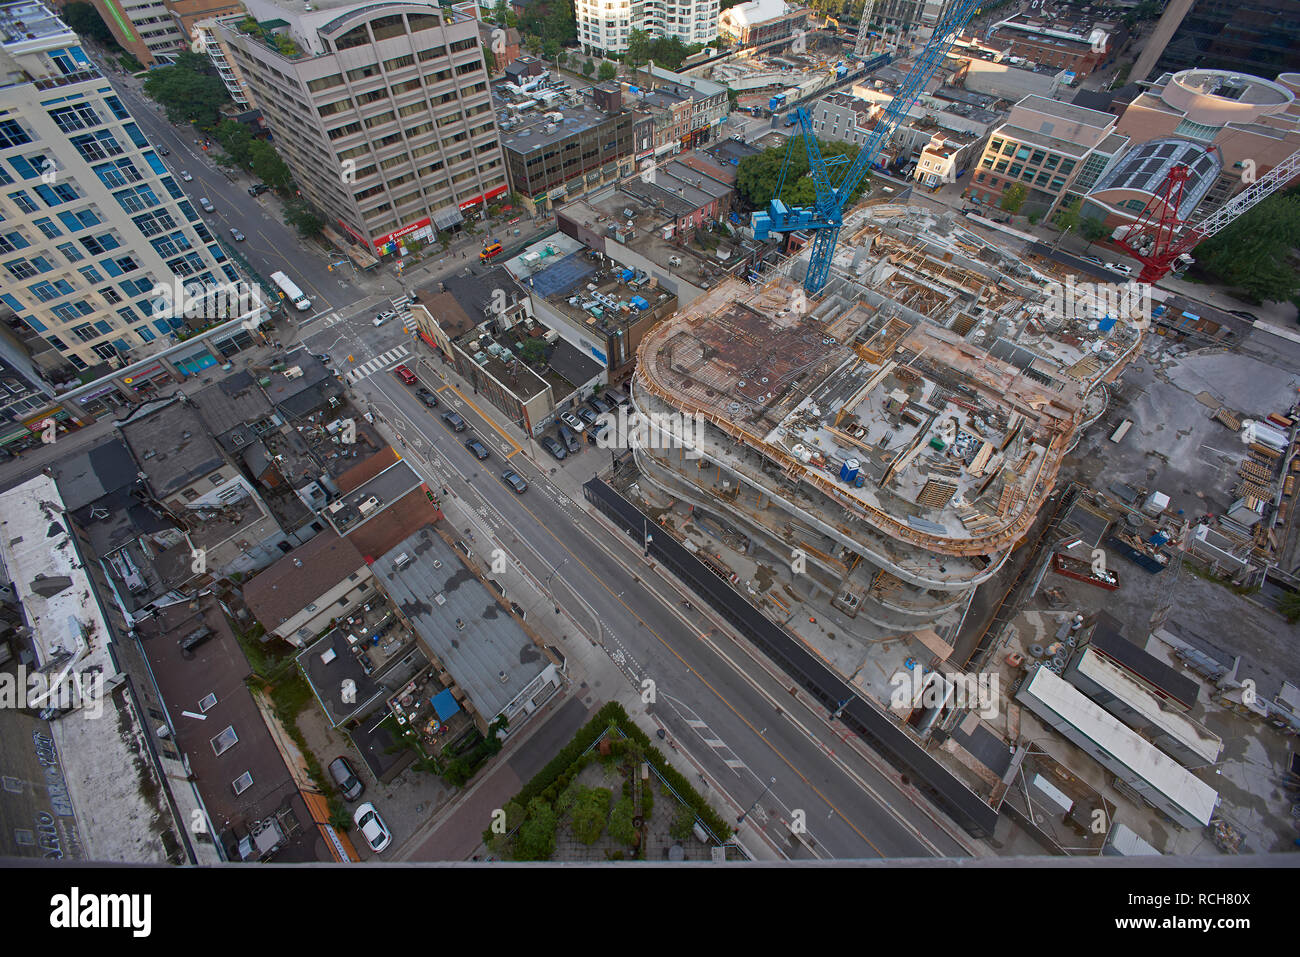 HIgh angle view looking down onto the streets of Toronto city centre and a construction site - Stock Image